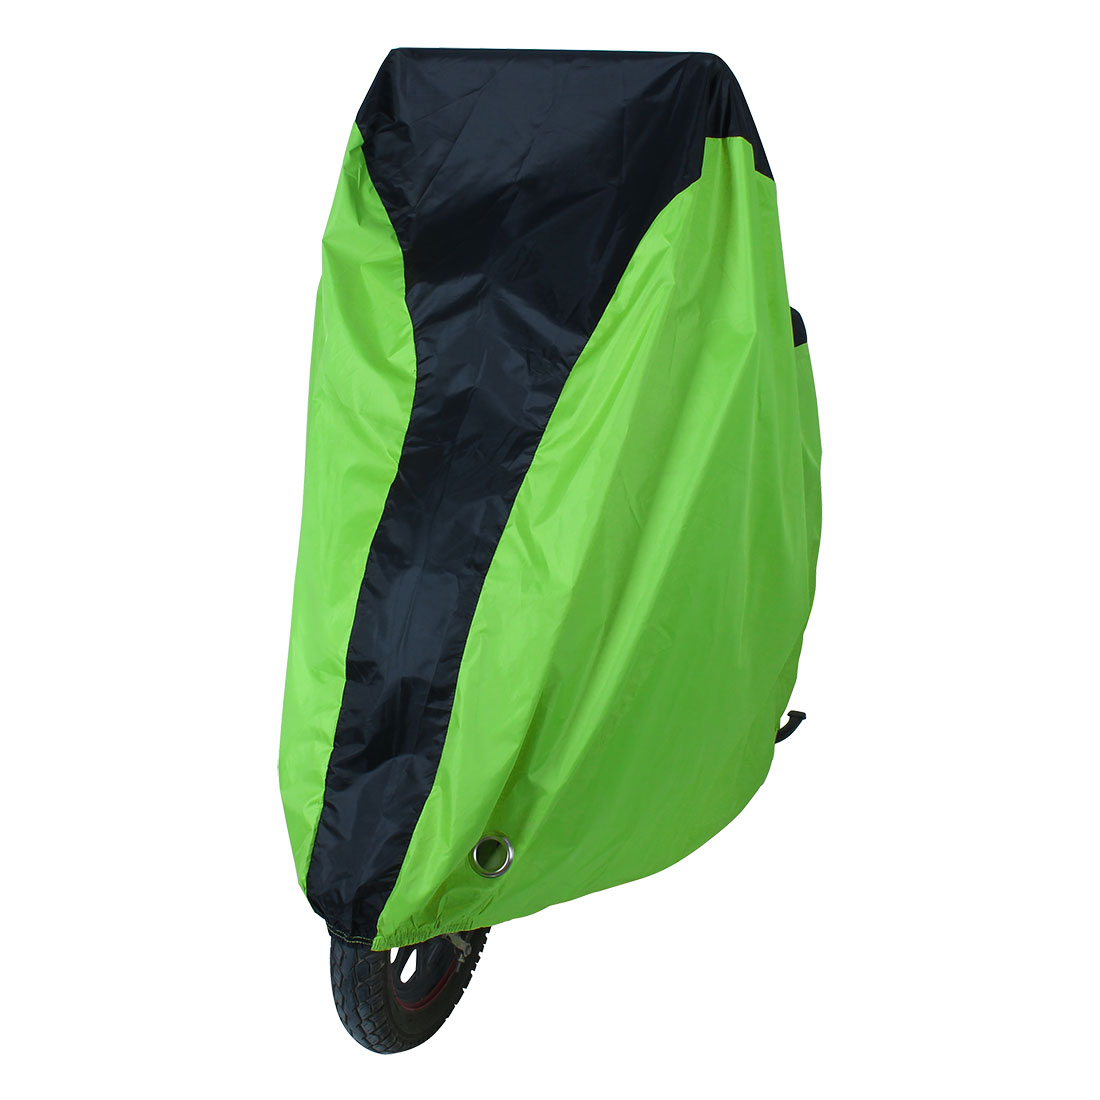 Outdoor Bike Bicycle Rain Dust Cover Water Resistant Garage Scooter Protector L Green